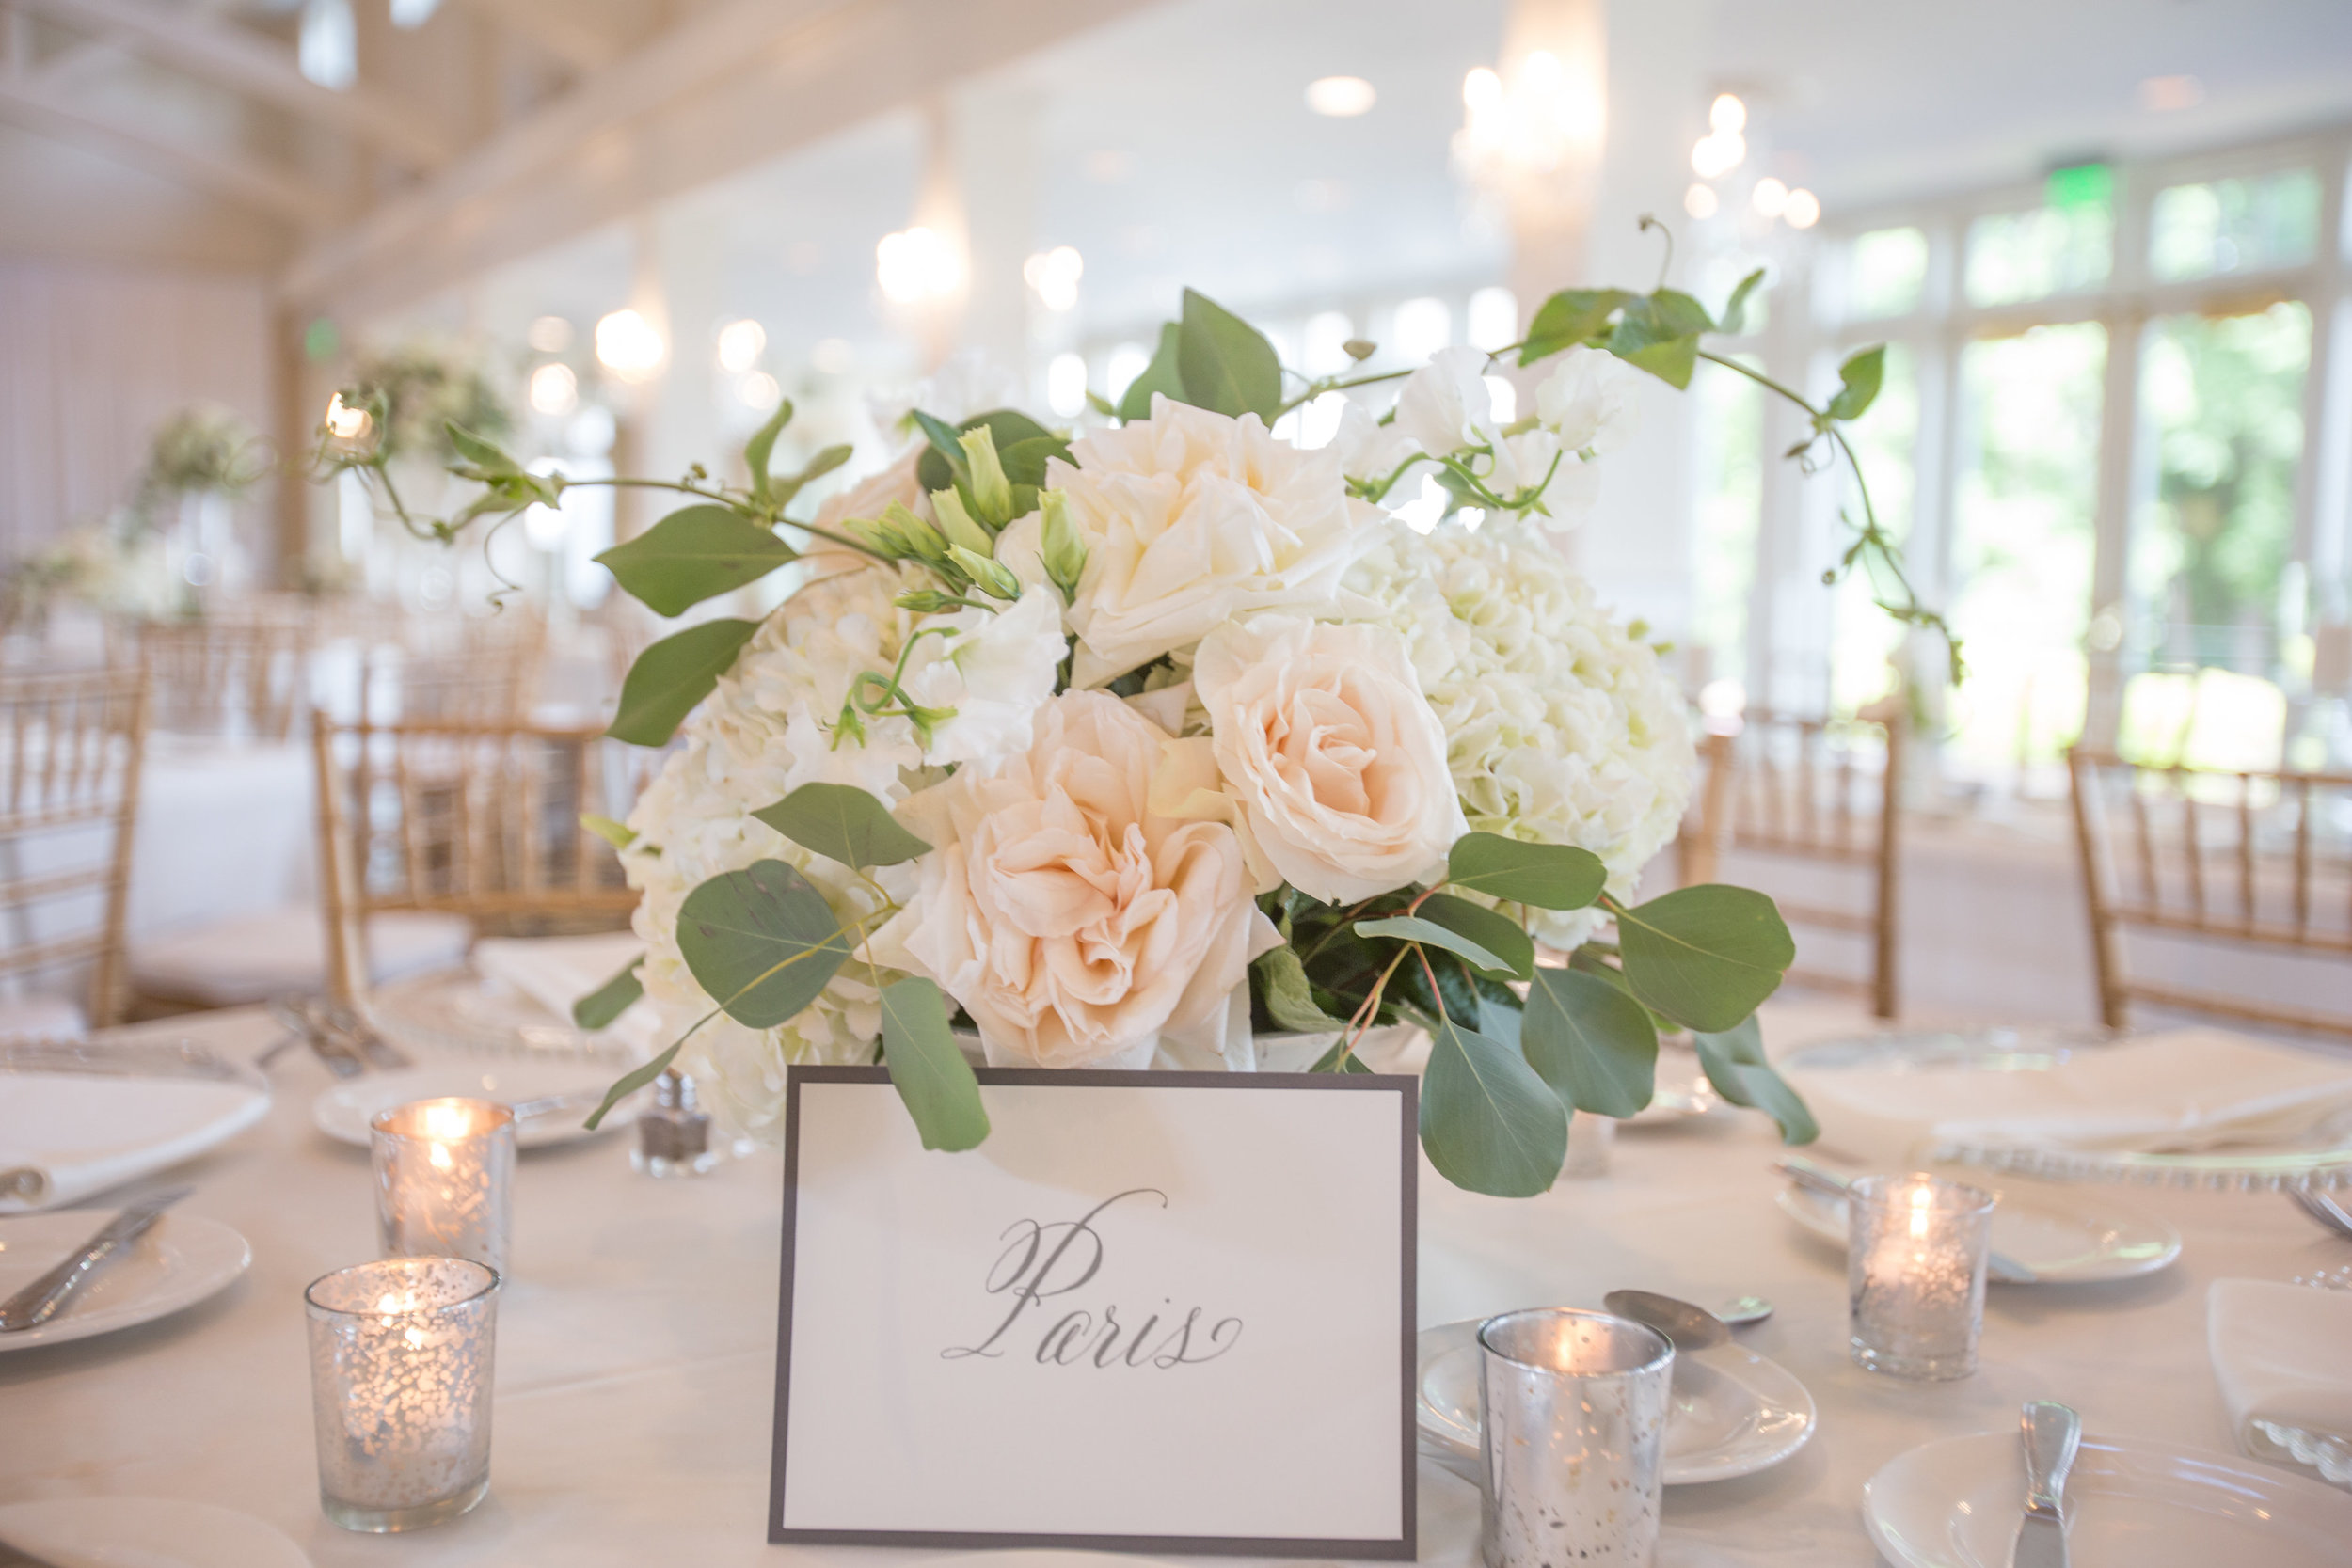 Charlotte North Carolina Wedding, Trump National Golf Course Wedding, Lakeside wedding, Blush Ivory and Greenery Wedding Design, The Graceful Host, Classic Wedding, Low Centerpiece, Wedding Flowers, Compote Wedding Centerpiece, Wedding Table Number Names, Peony Wedding, Spring Wedding